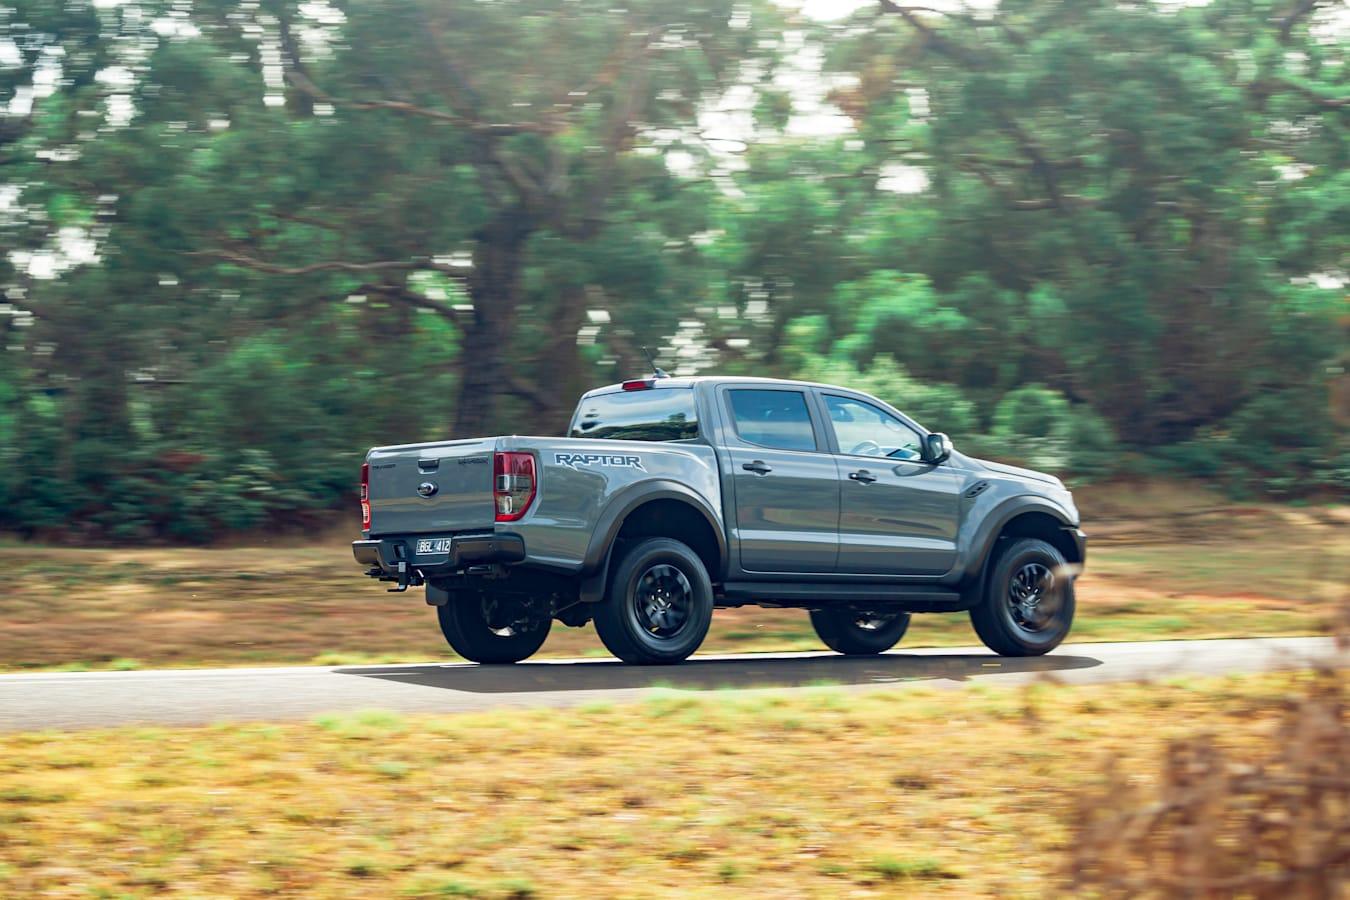 4 X 4 Australia Comparisons 2021 May 21 Ford Ranger Raptor On Road Performance